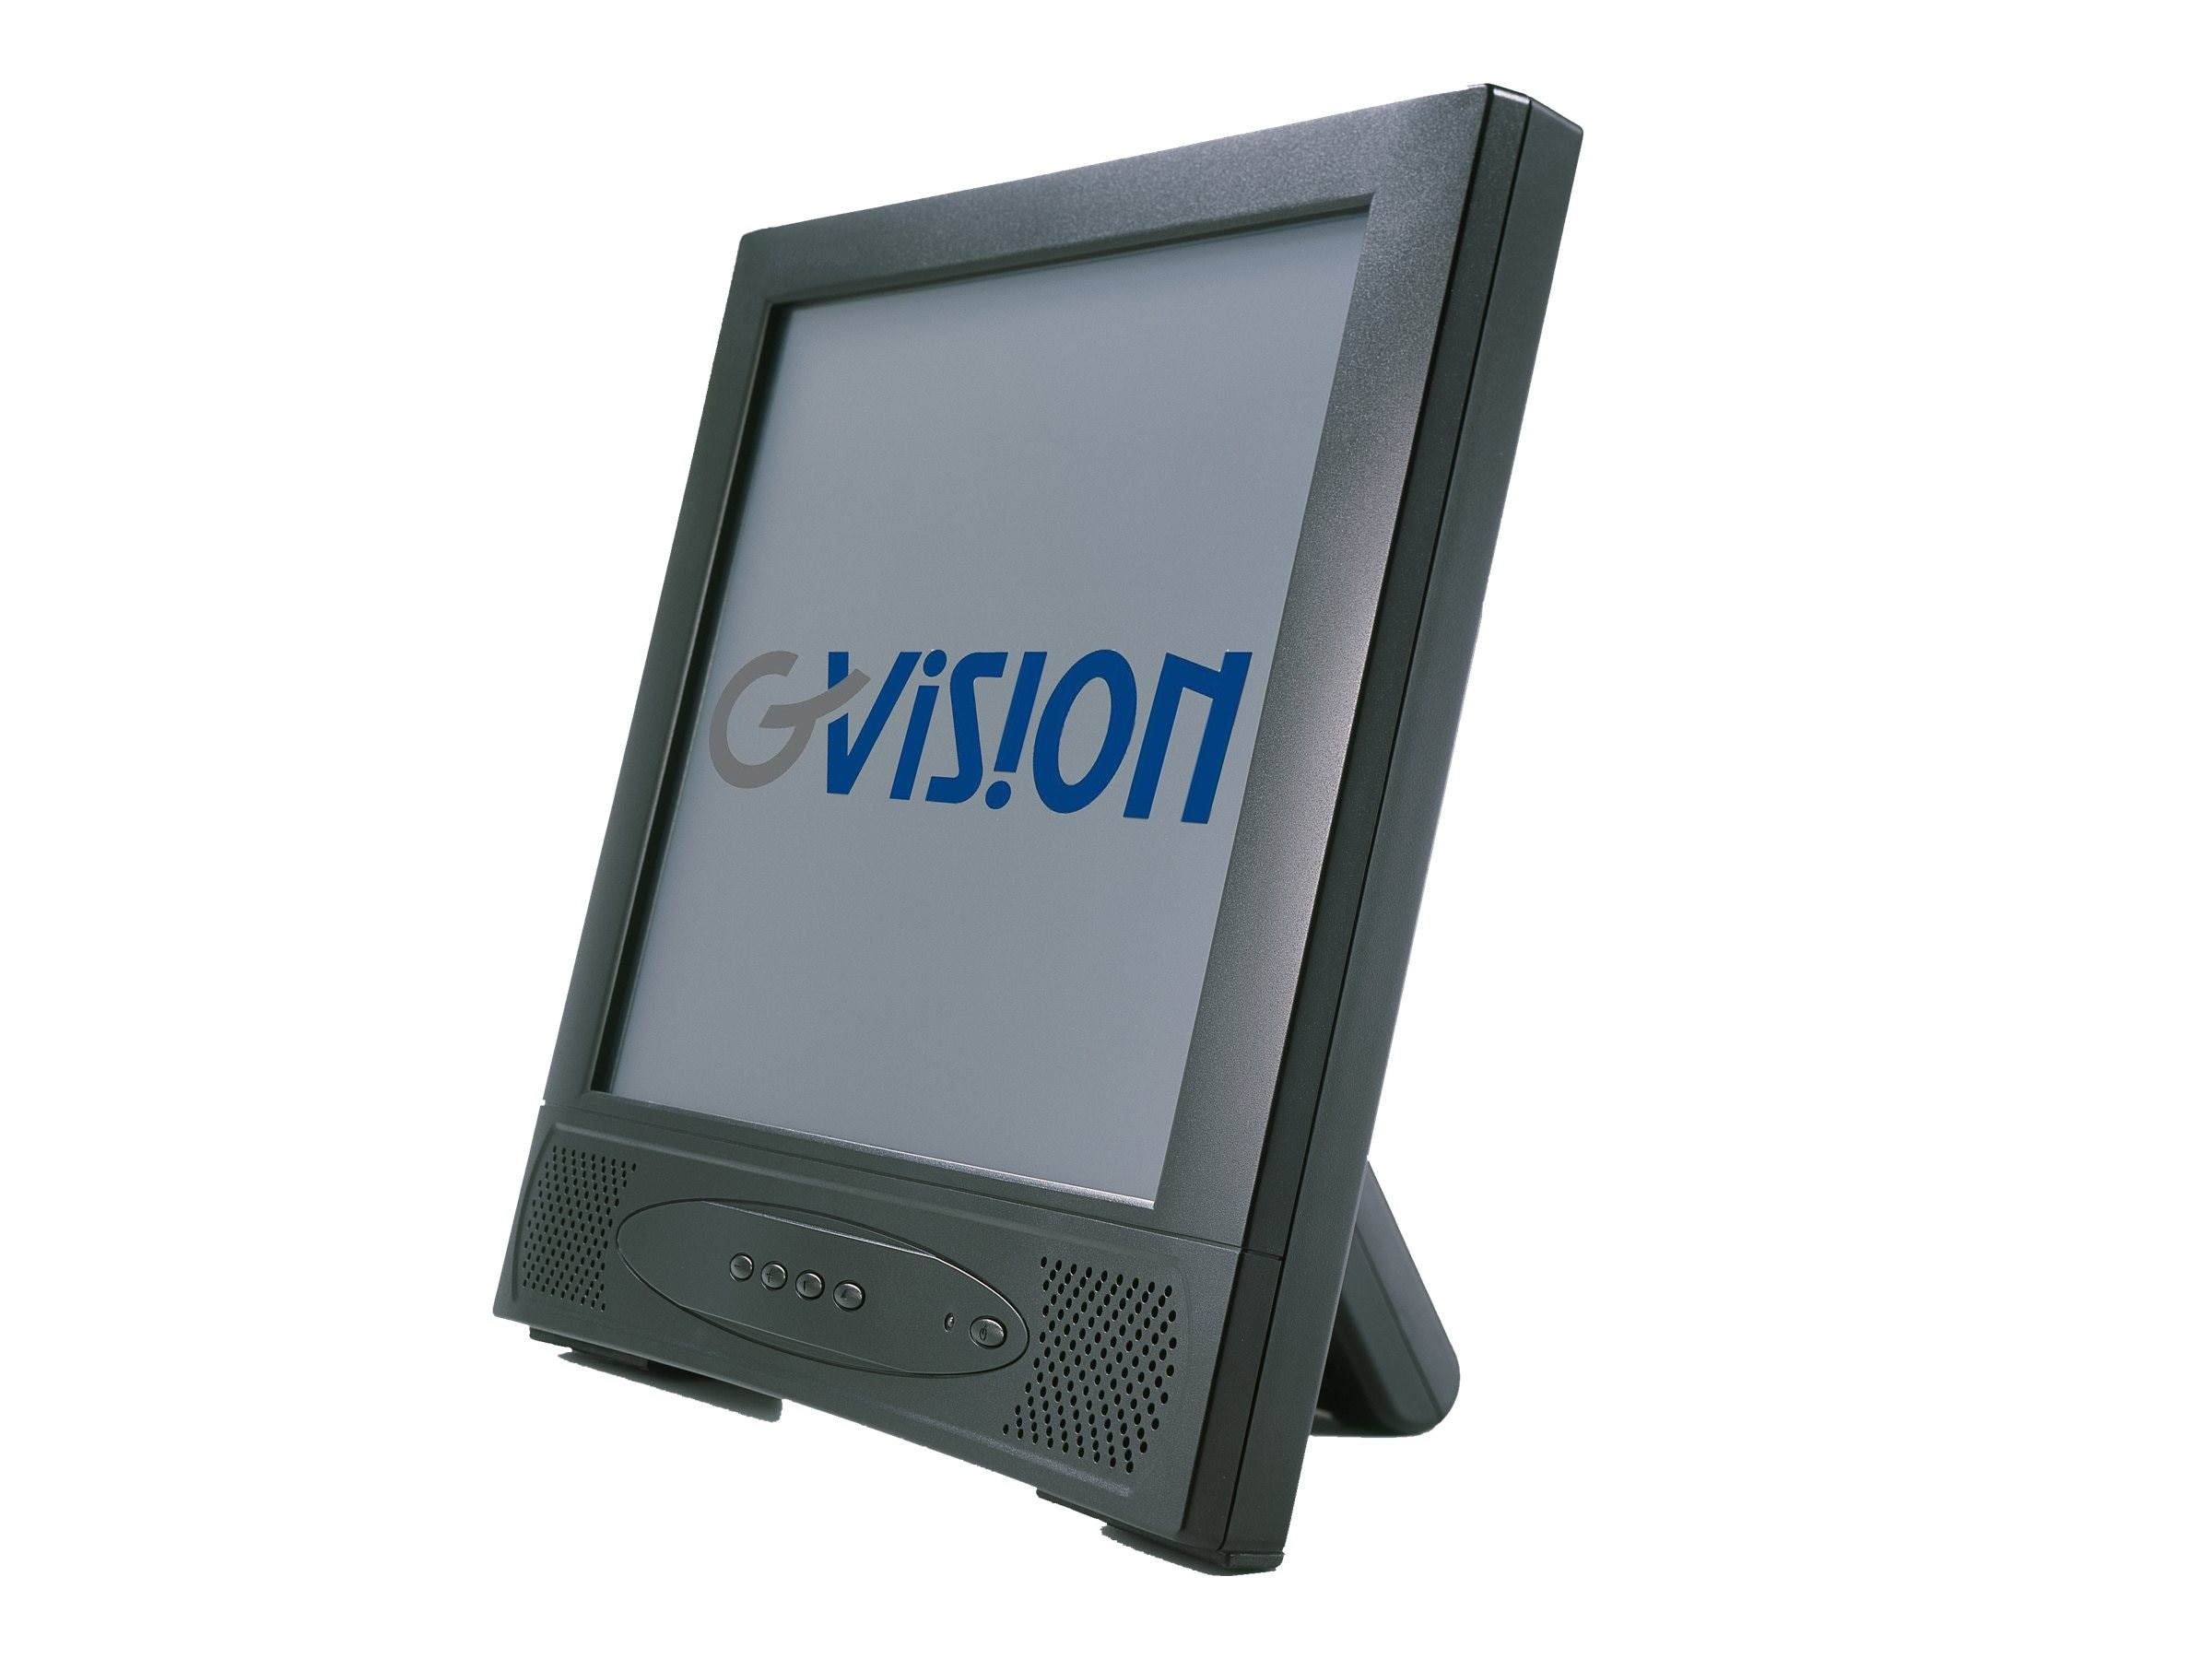 GVision 15 L15AX-JA-453G LCD Touchscreen Monitor, Black